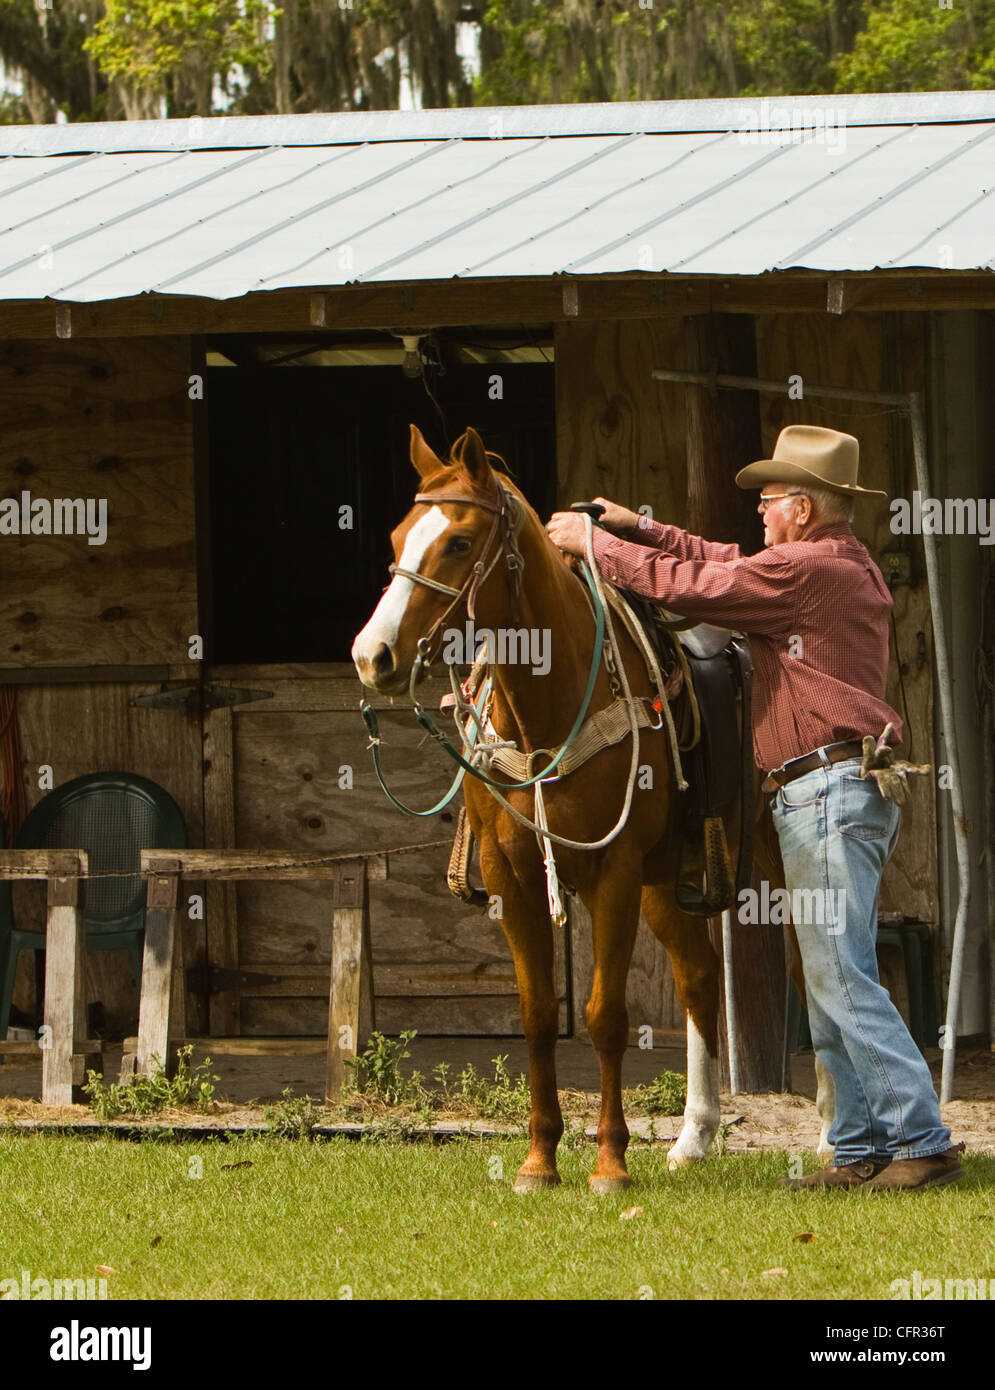 A cowboy preparing to mount his horse. Stock Photo